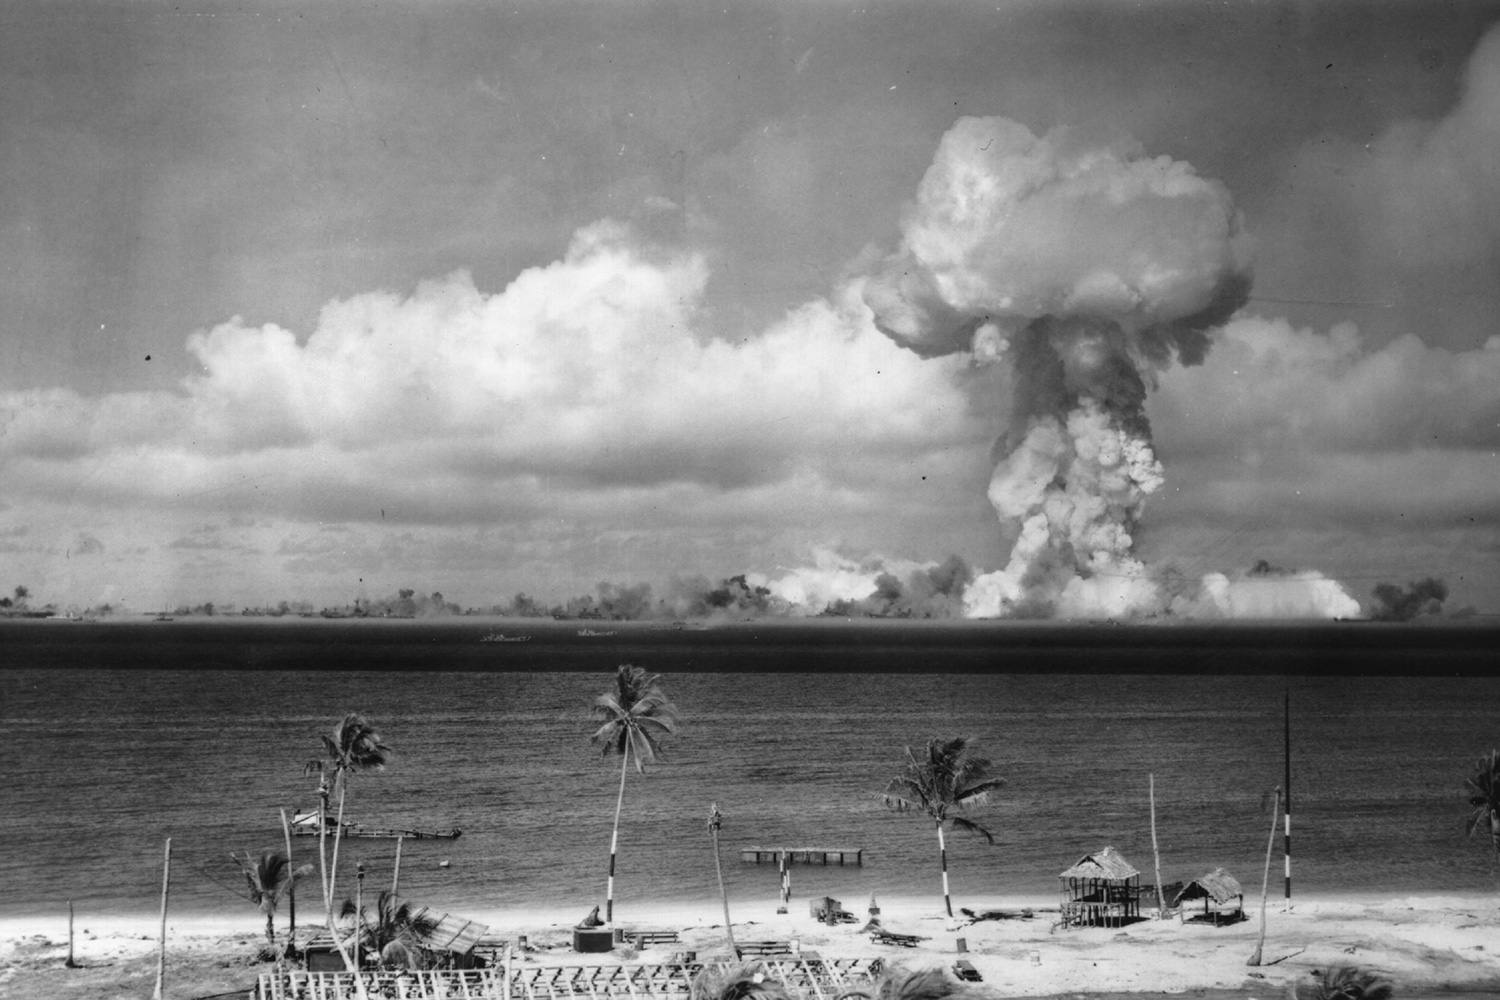 A mushroom cloud forms after the initial atomic bomb test explosion off the coast of Bikini Atoll, Marshall Islands.